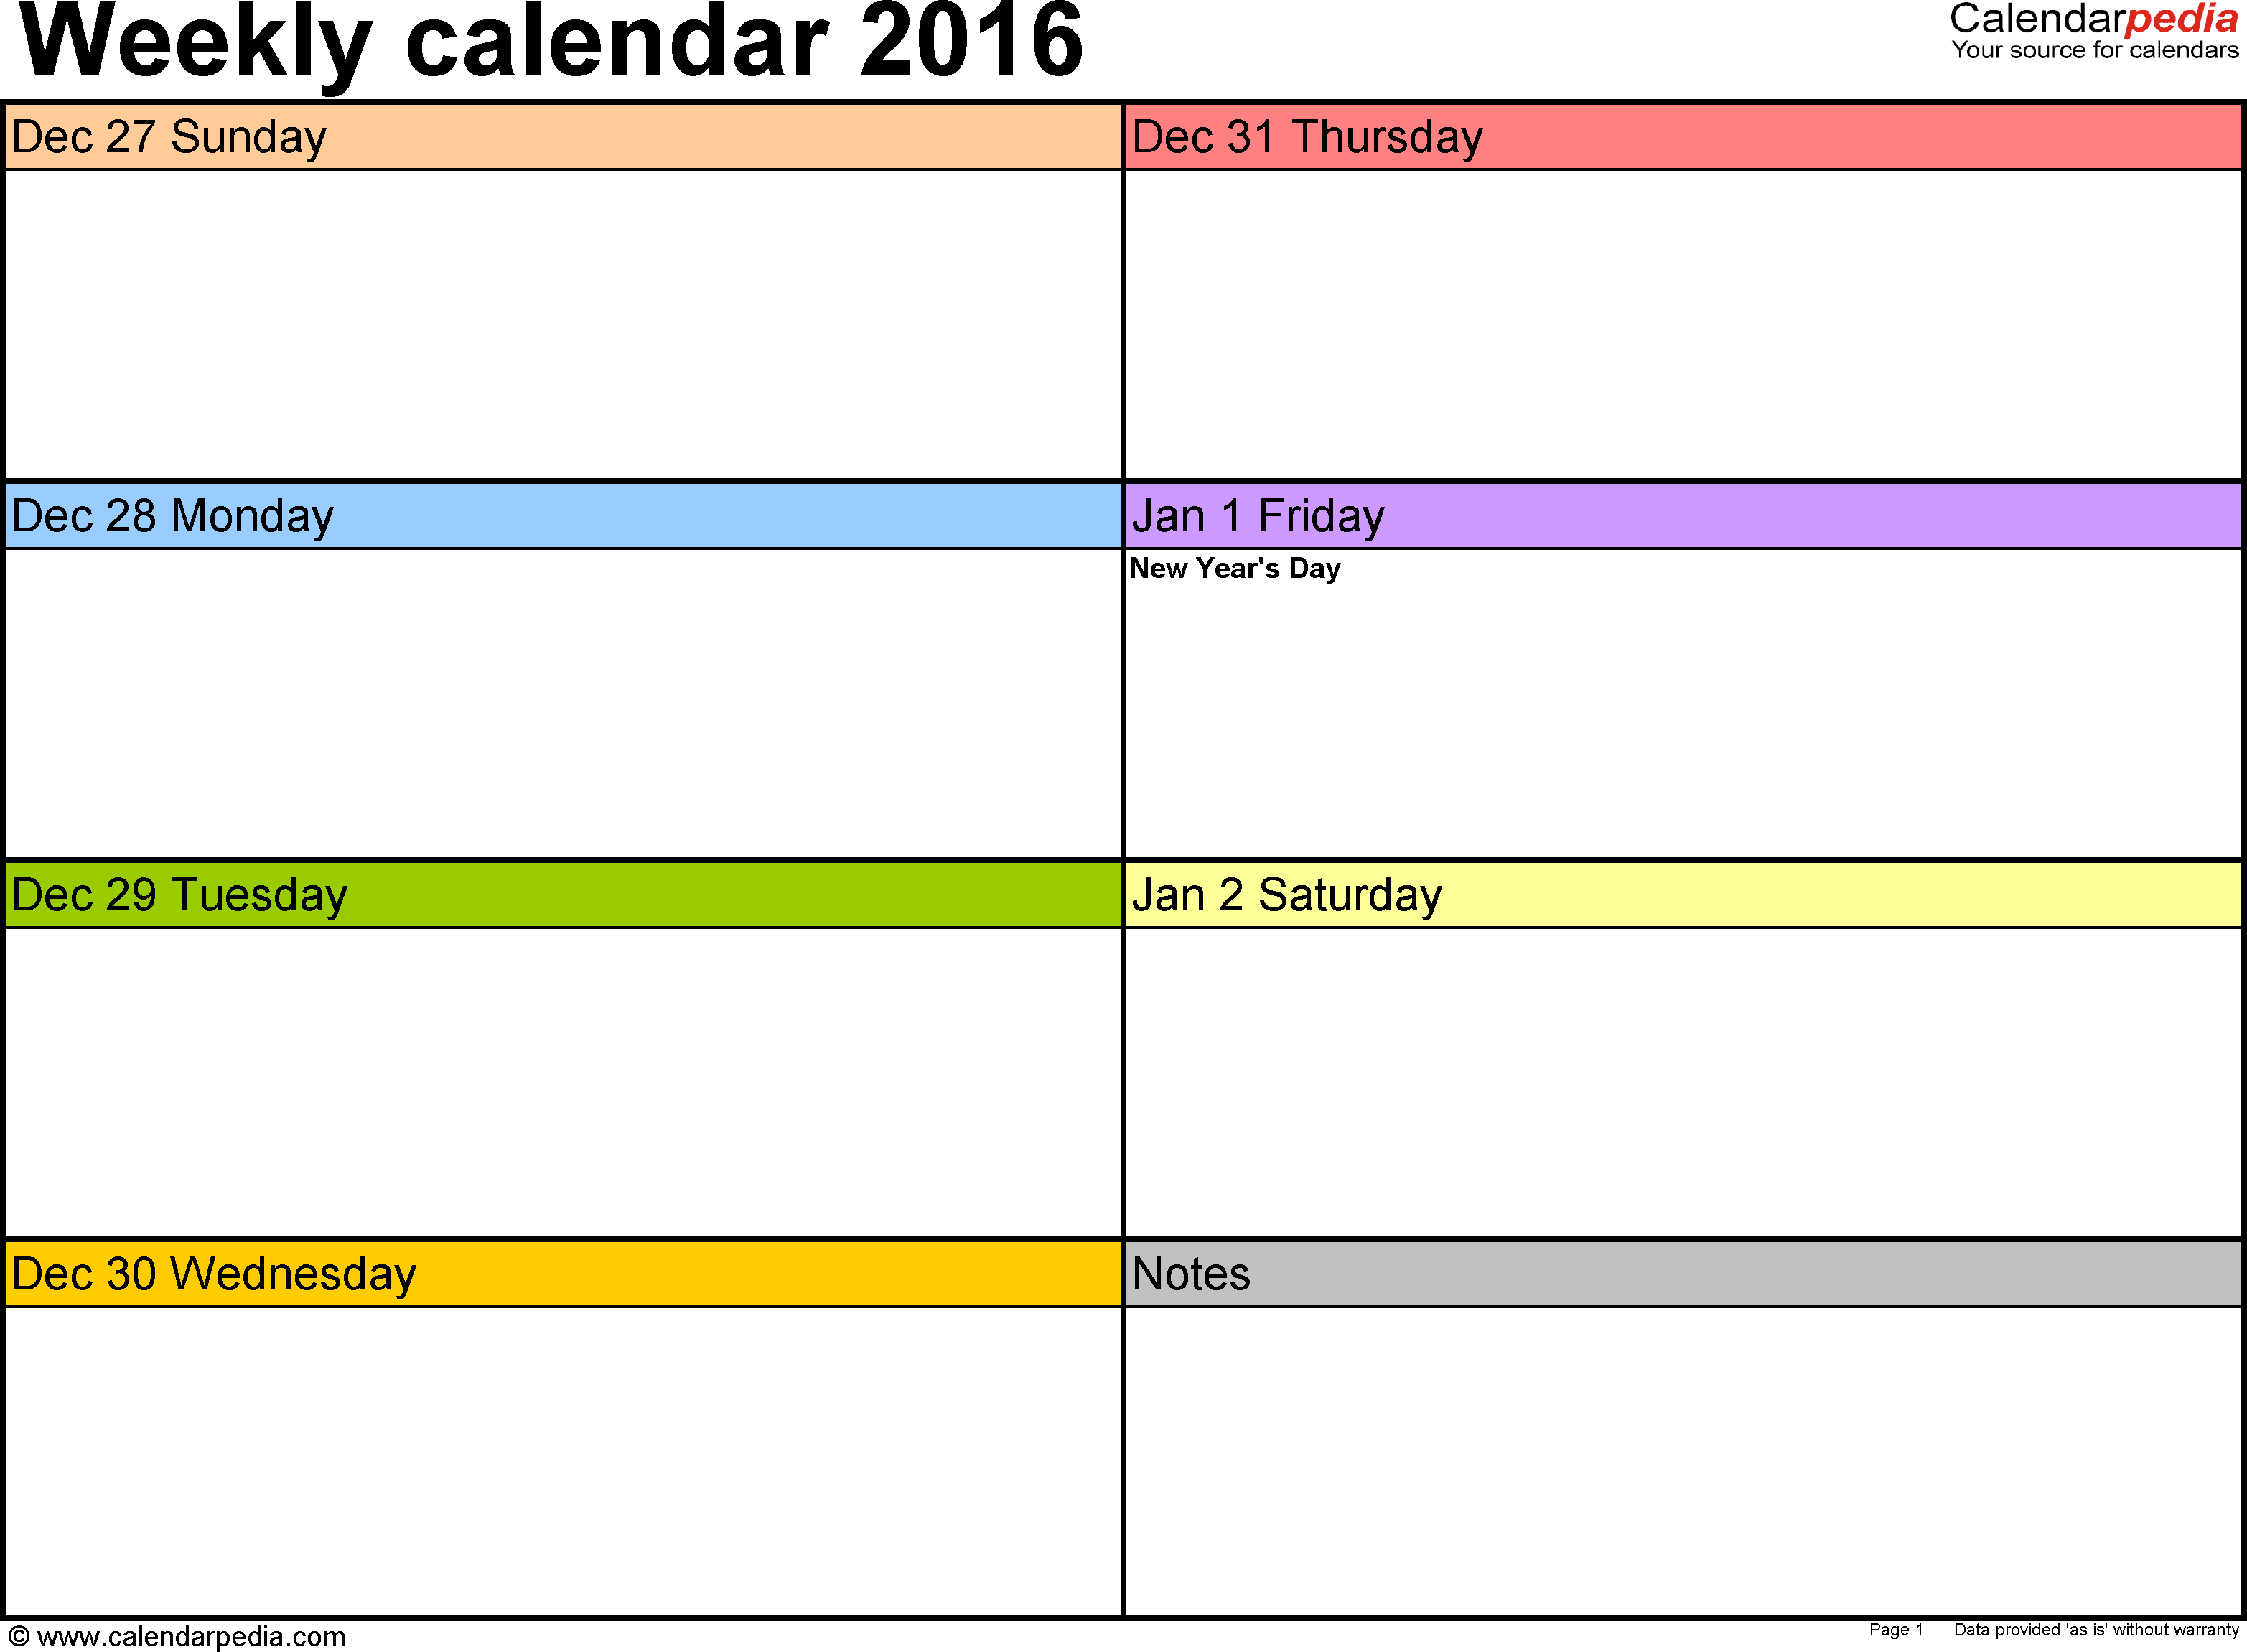 Weekly calendar 2016 for pdf 12 free printable templates for 2 page weekly calendar template